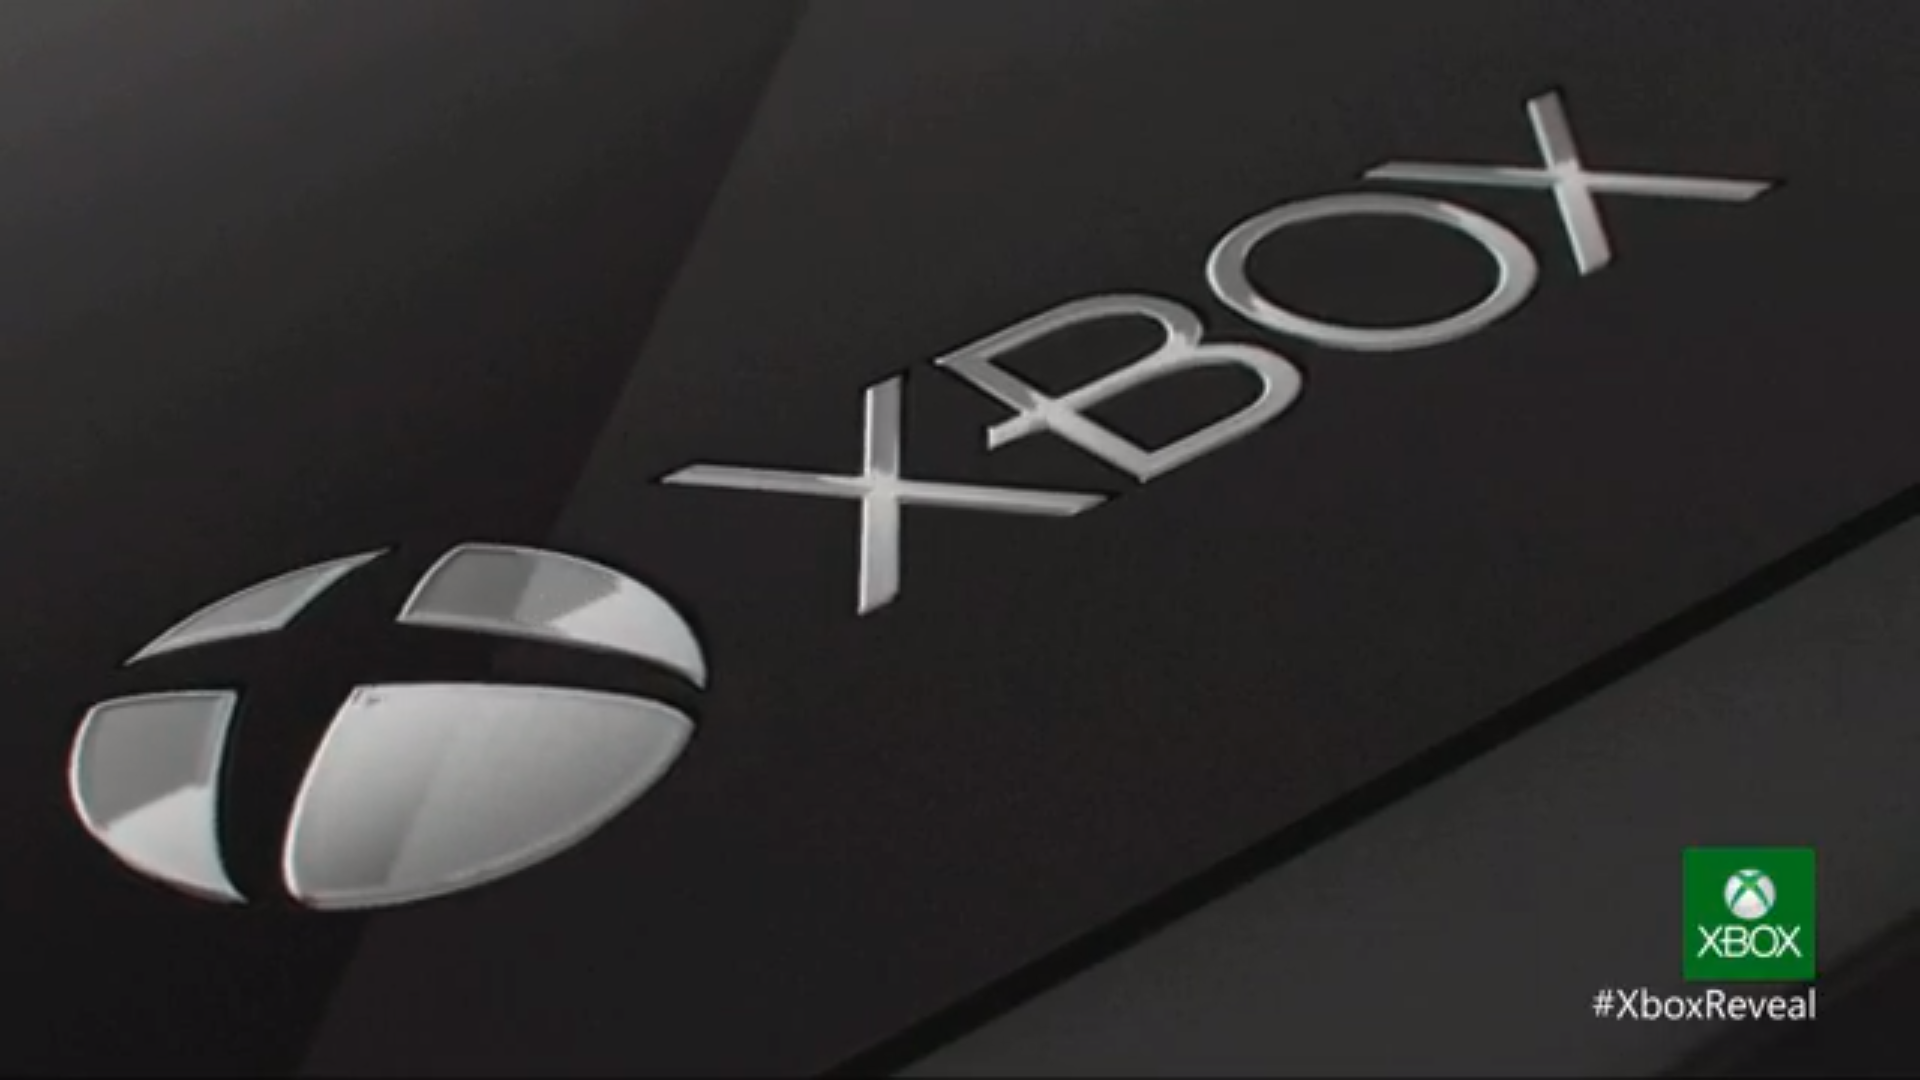 Download Xbox One Wallpaper 1920x1080 Gallery Hd Wallpaper 1920x1080 Free Download